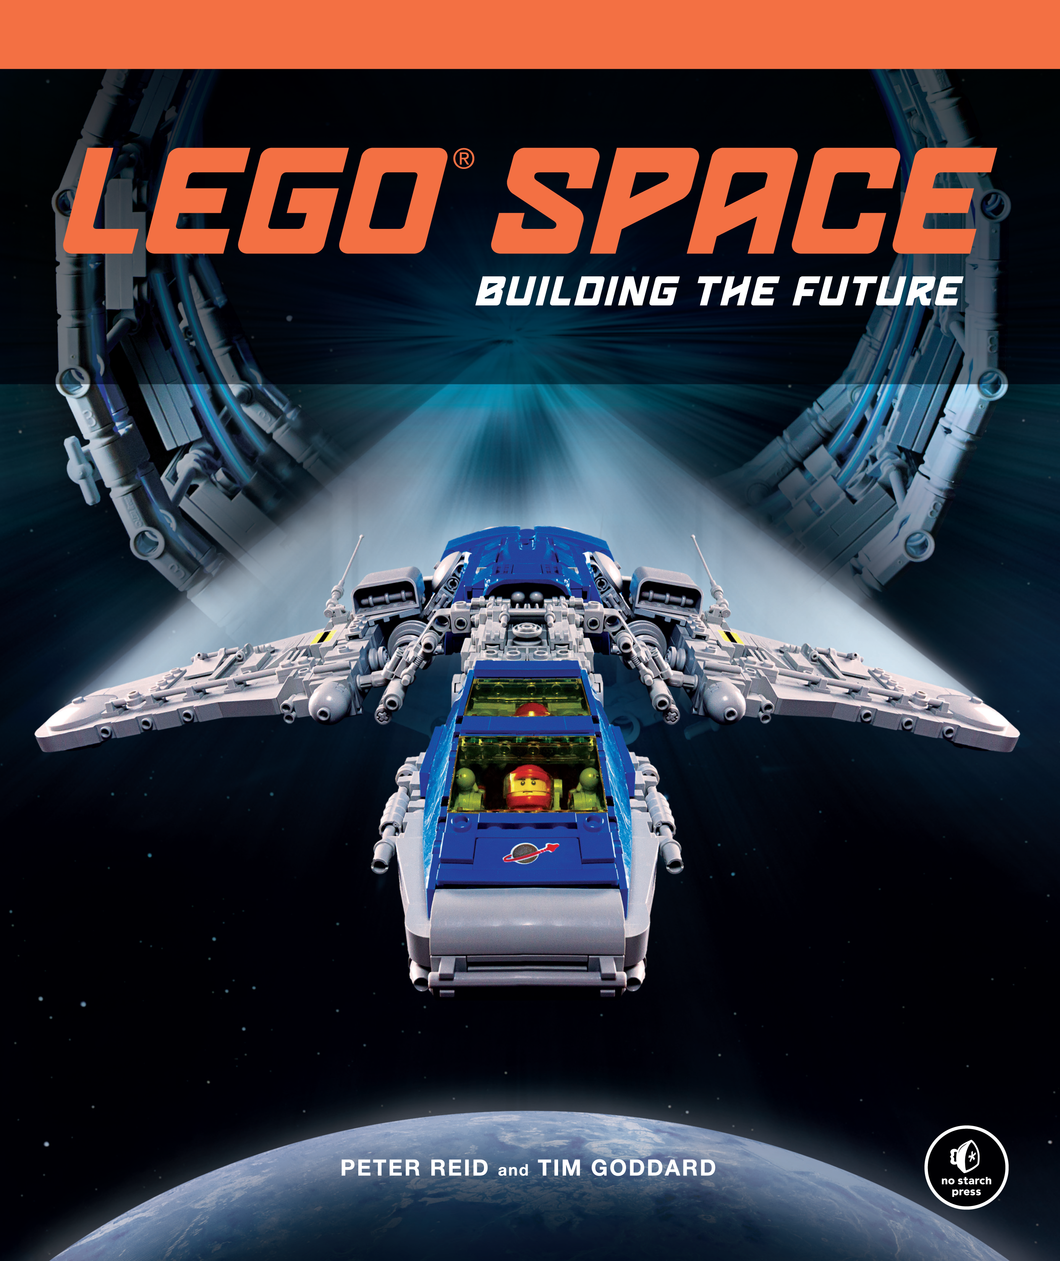 LEGO Space: Building The Future